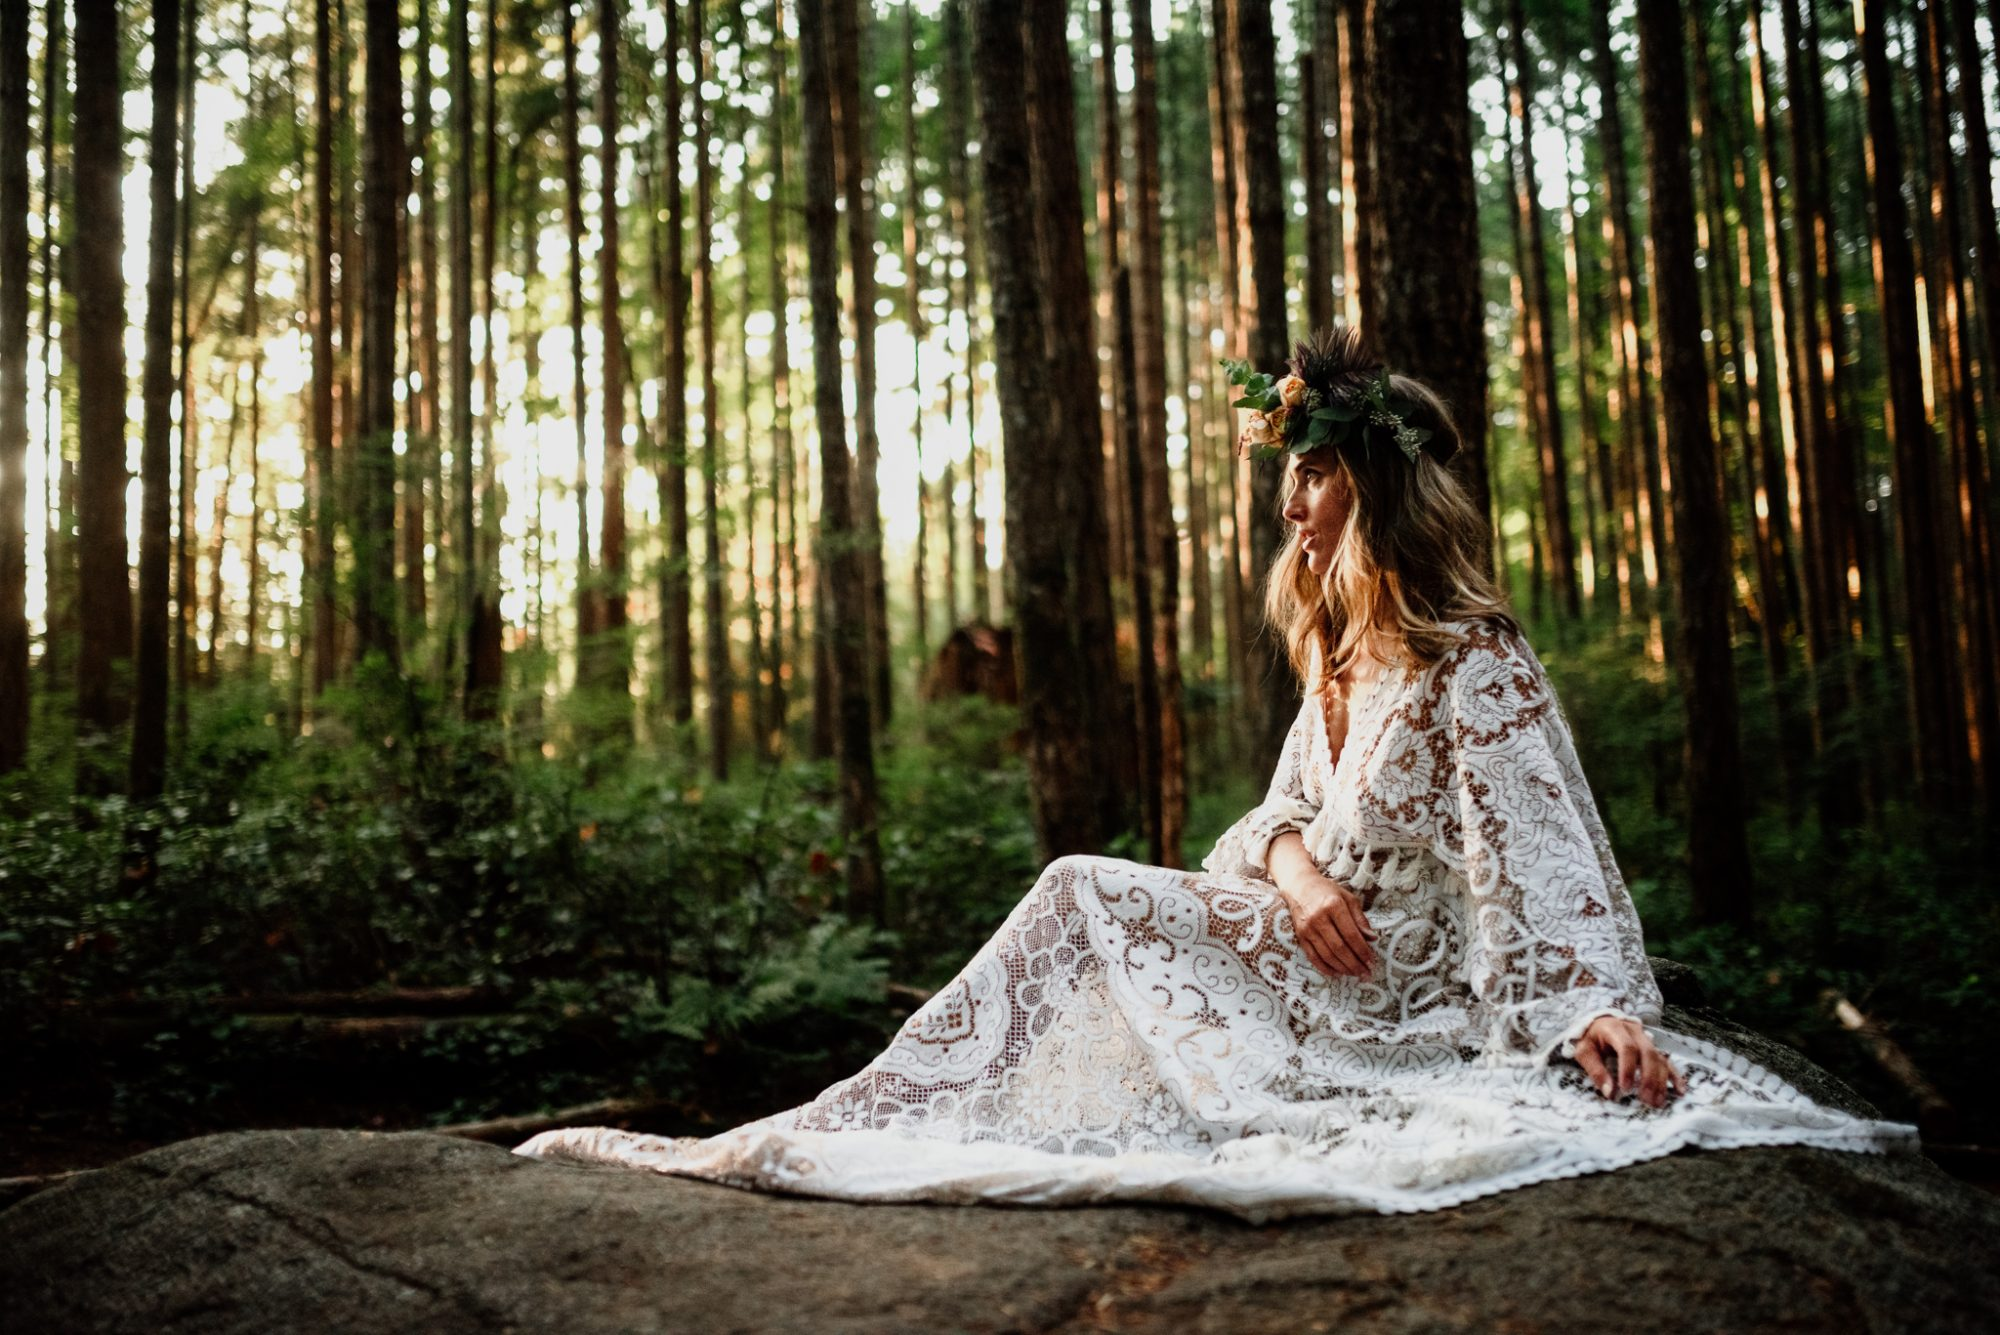 Woman in forest wearing vintage lace reclamation design company gown for lifestyle photoshoot